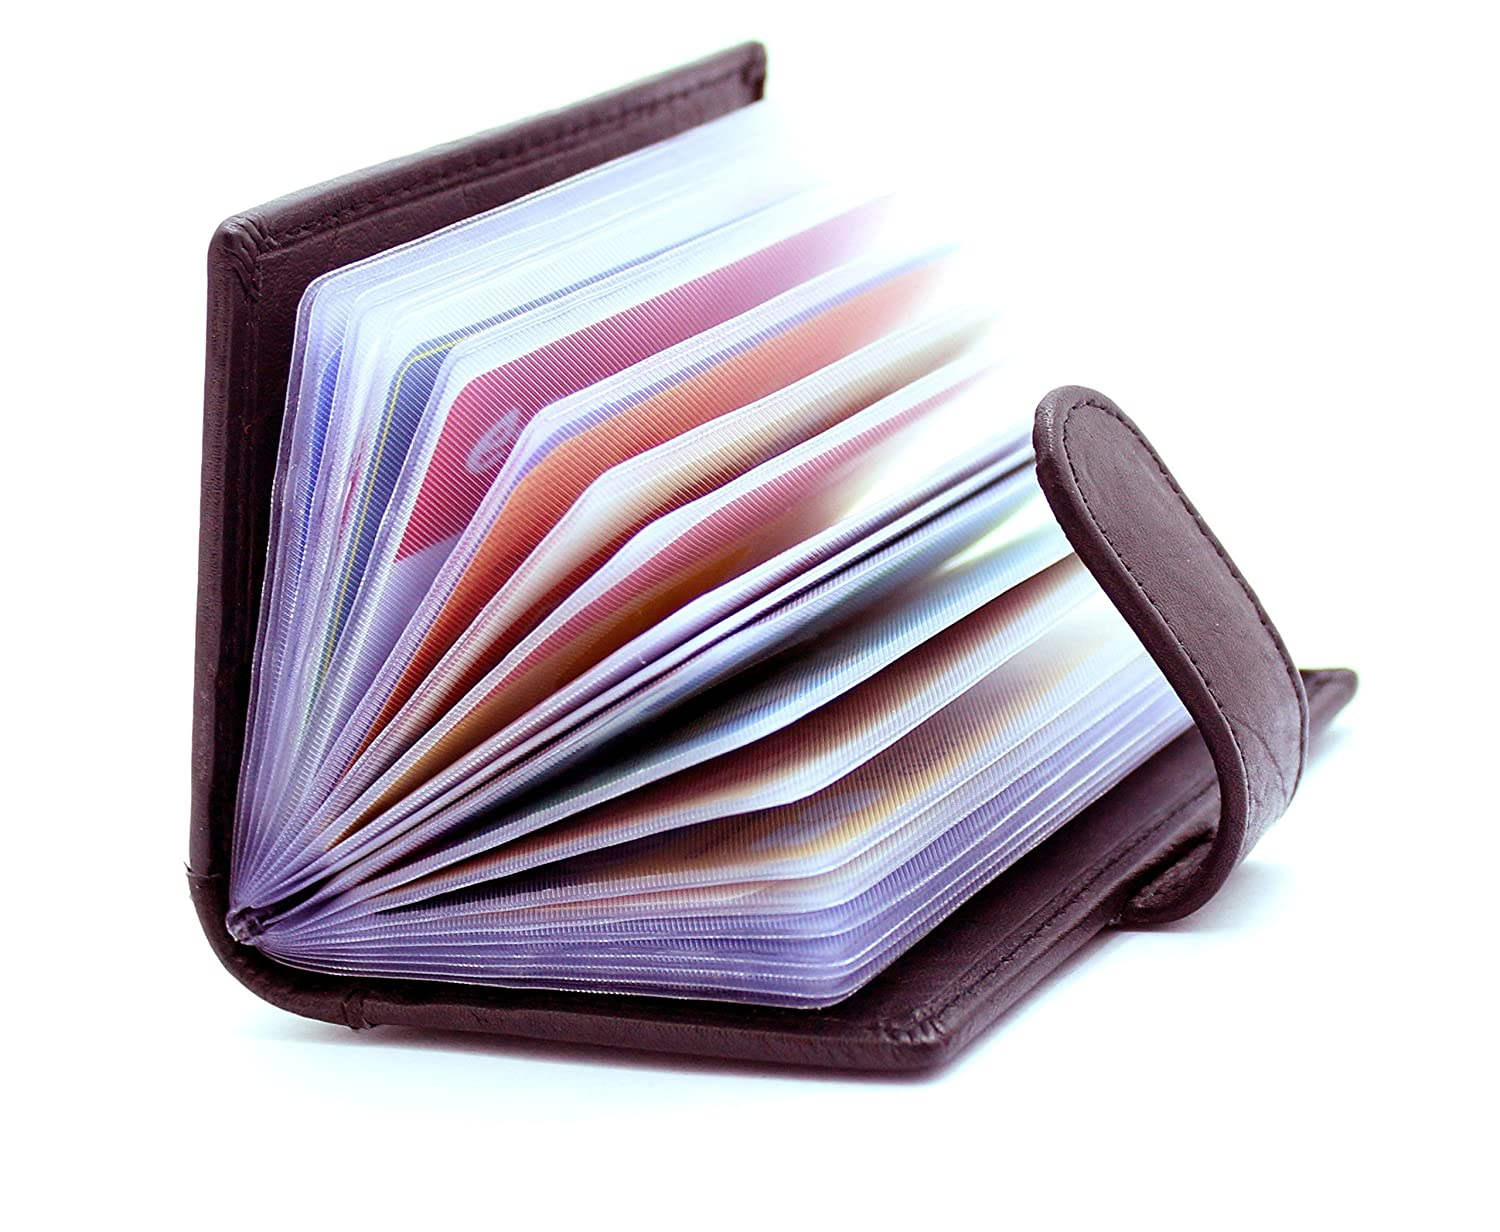 RAS WALLETS Mens Leather Credit Card Holder Wallet-20 Clear Plastic Pockets Brown